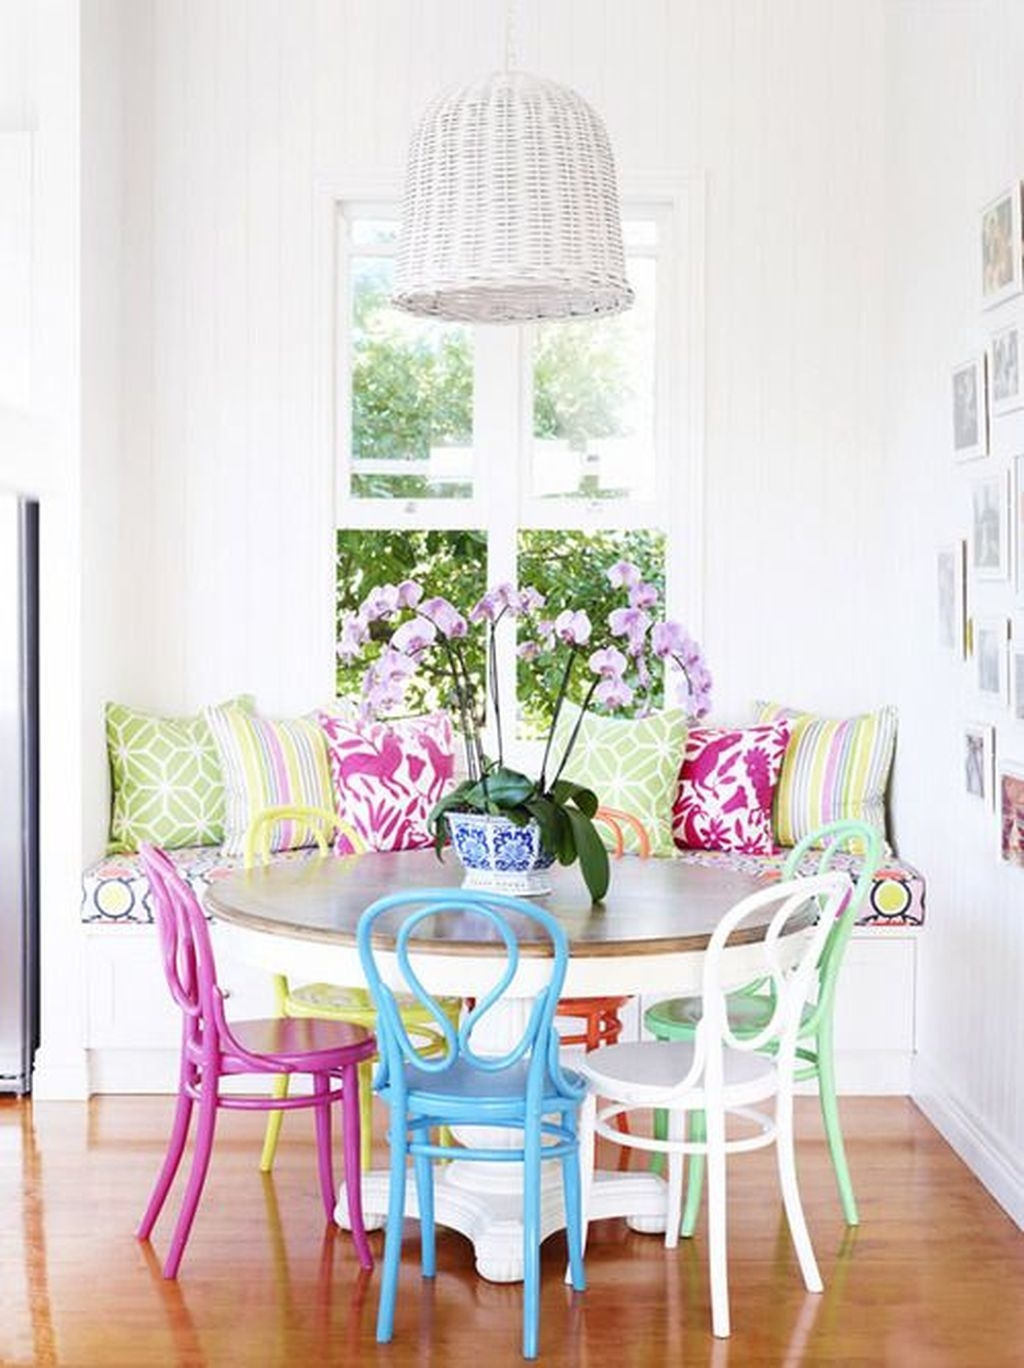 Stunning Dining Room Design Ideas With Multicolored Chairs38